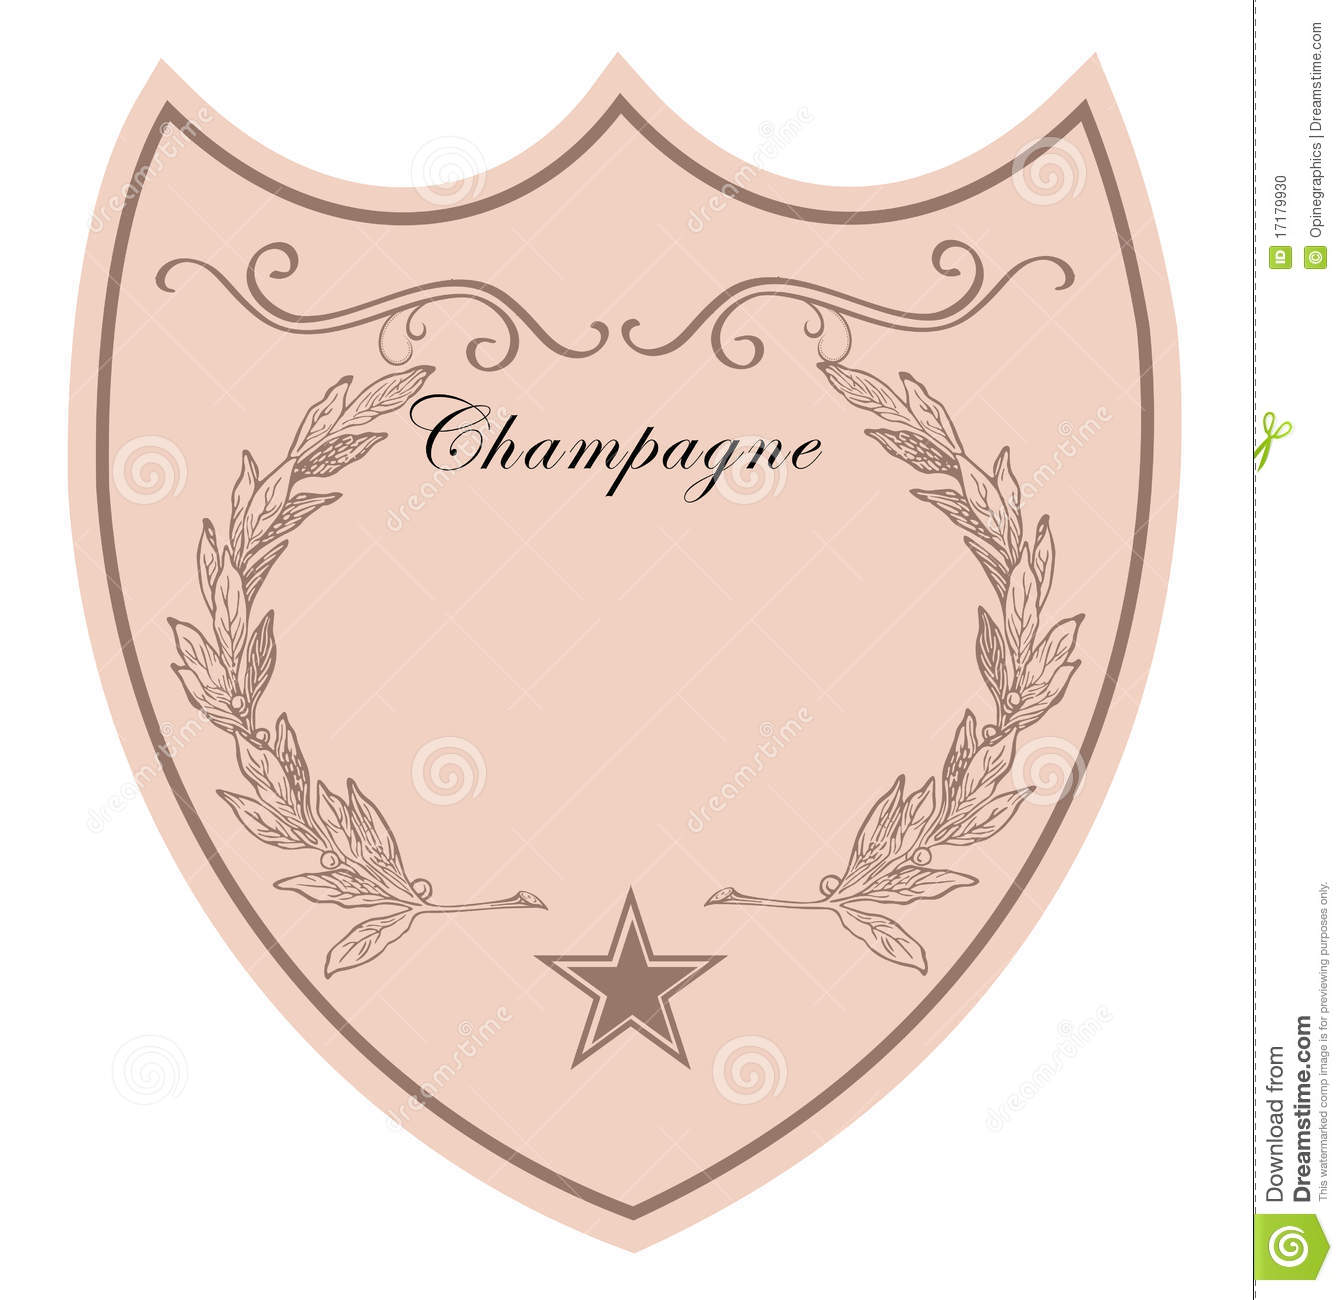 Champagne Label Stock Photo - Image: 17179930